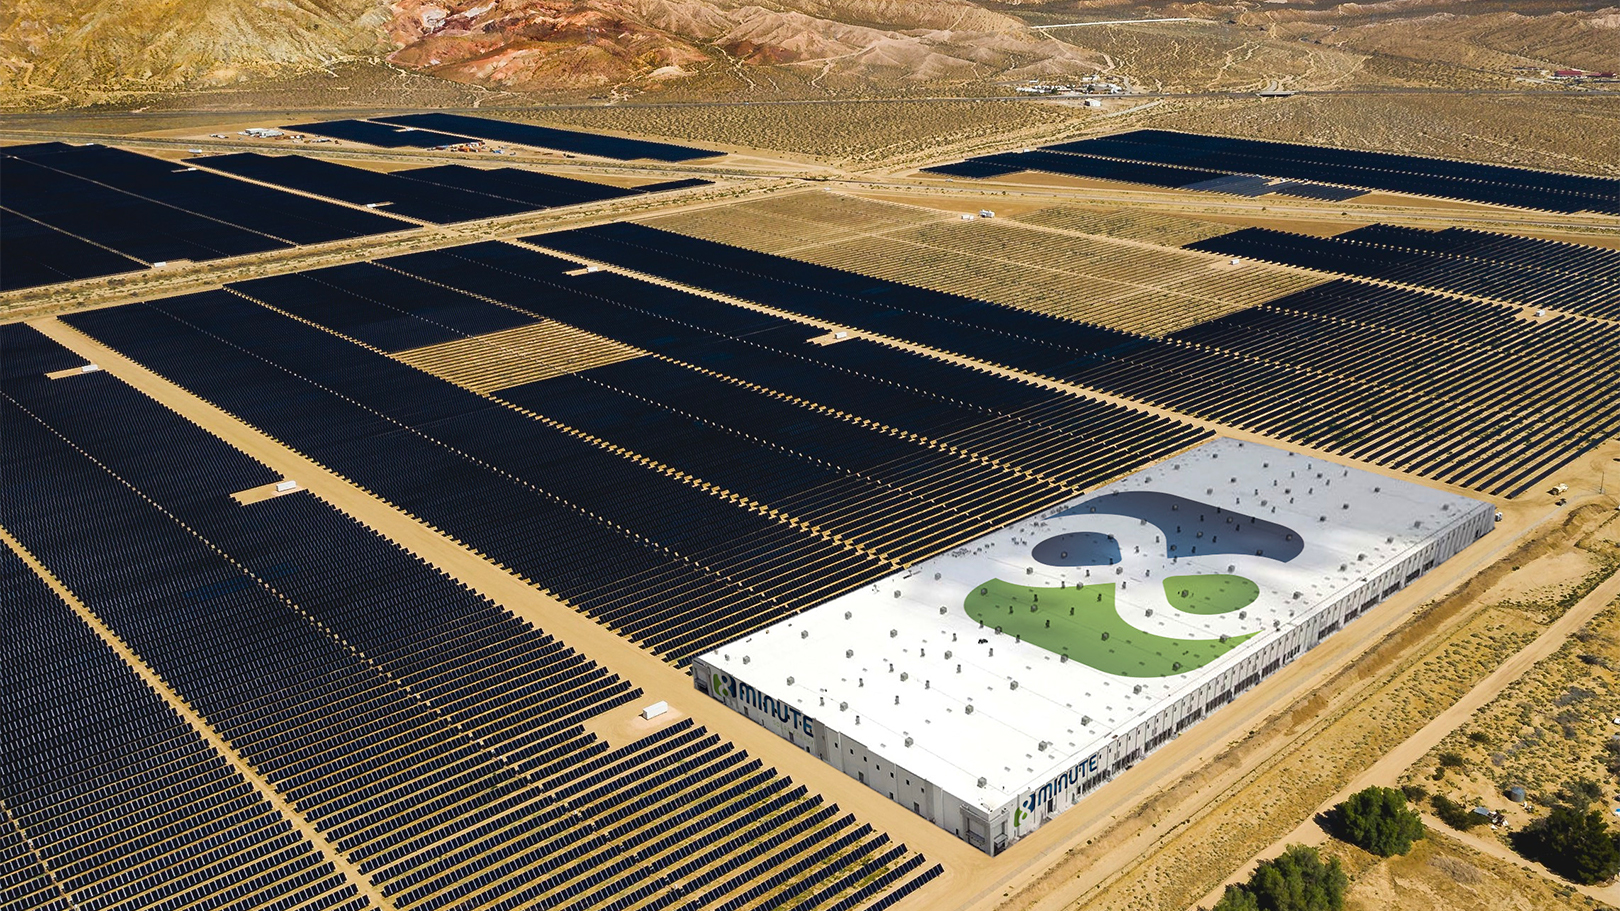 Artist's rendering of the new Eland Solar site, Copyright 2019 8 Minute Solar Energy